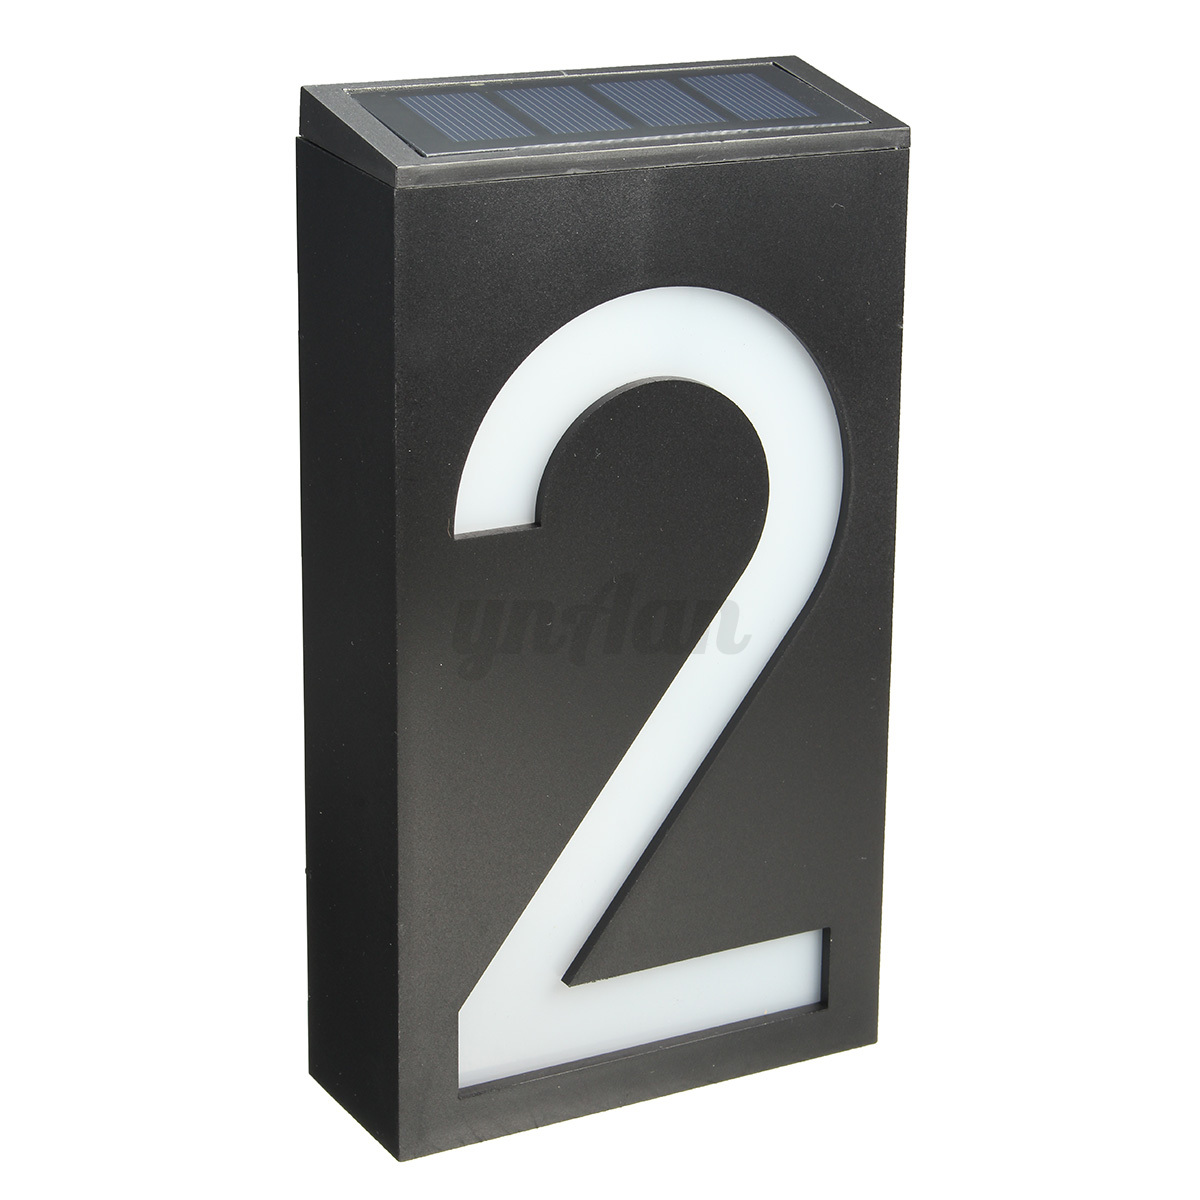 solar power 6 led number 0 9 light sign house door address plaque digit plate ebay. Black Bedroom Furniture Sets. Home Design Ideas